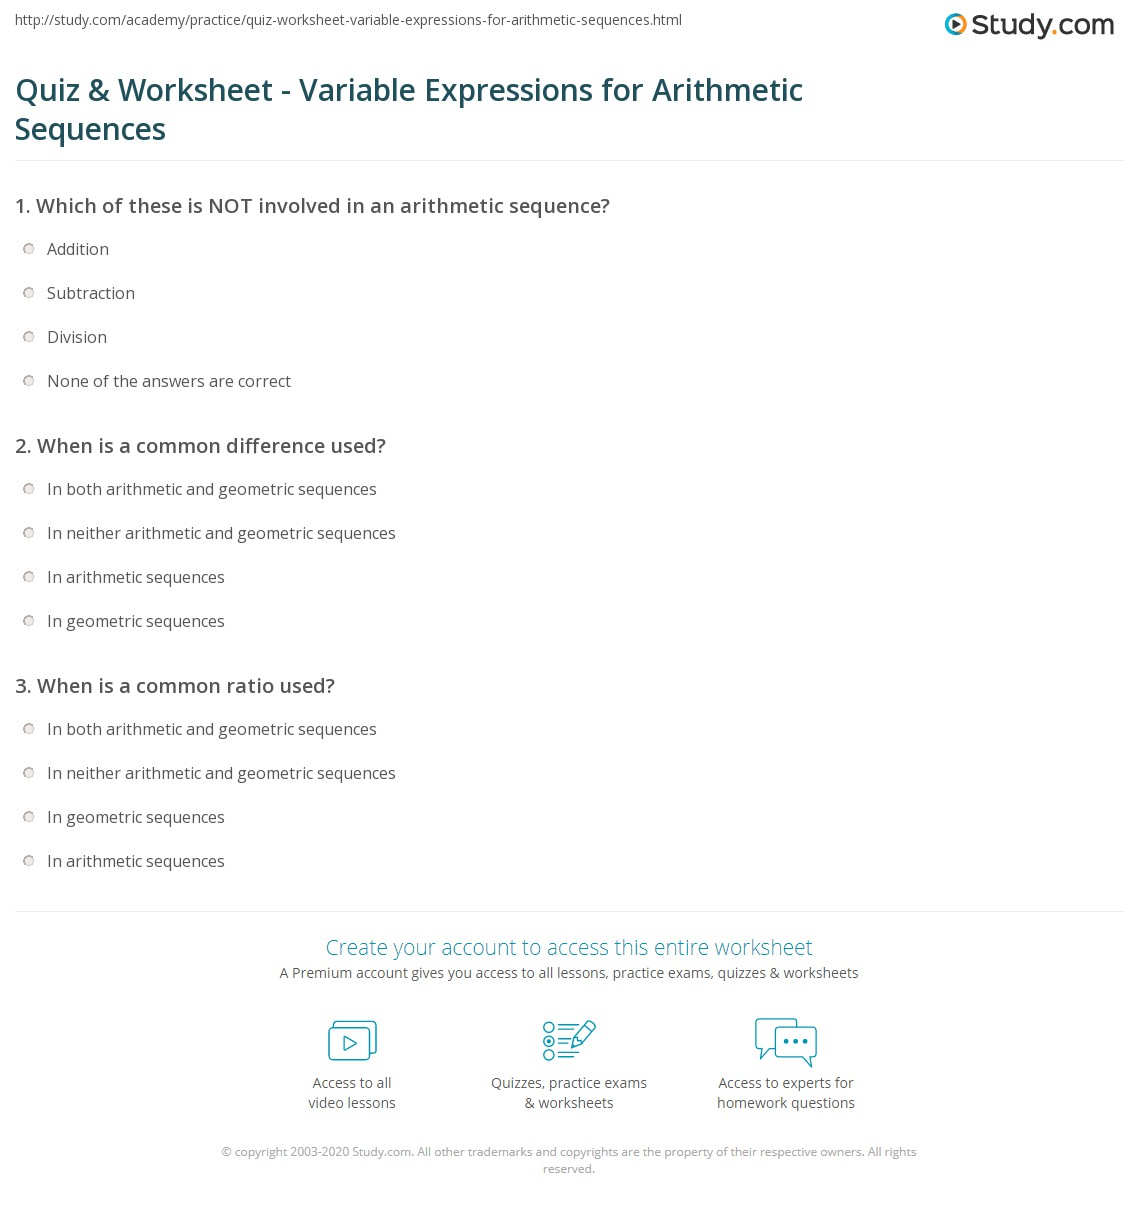 Worksheets Variables And Expressions Worksheets quiz worksheet variable expressions for arithmetic sequences print how to evaluate write worksheet